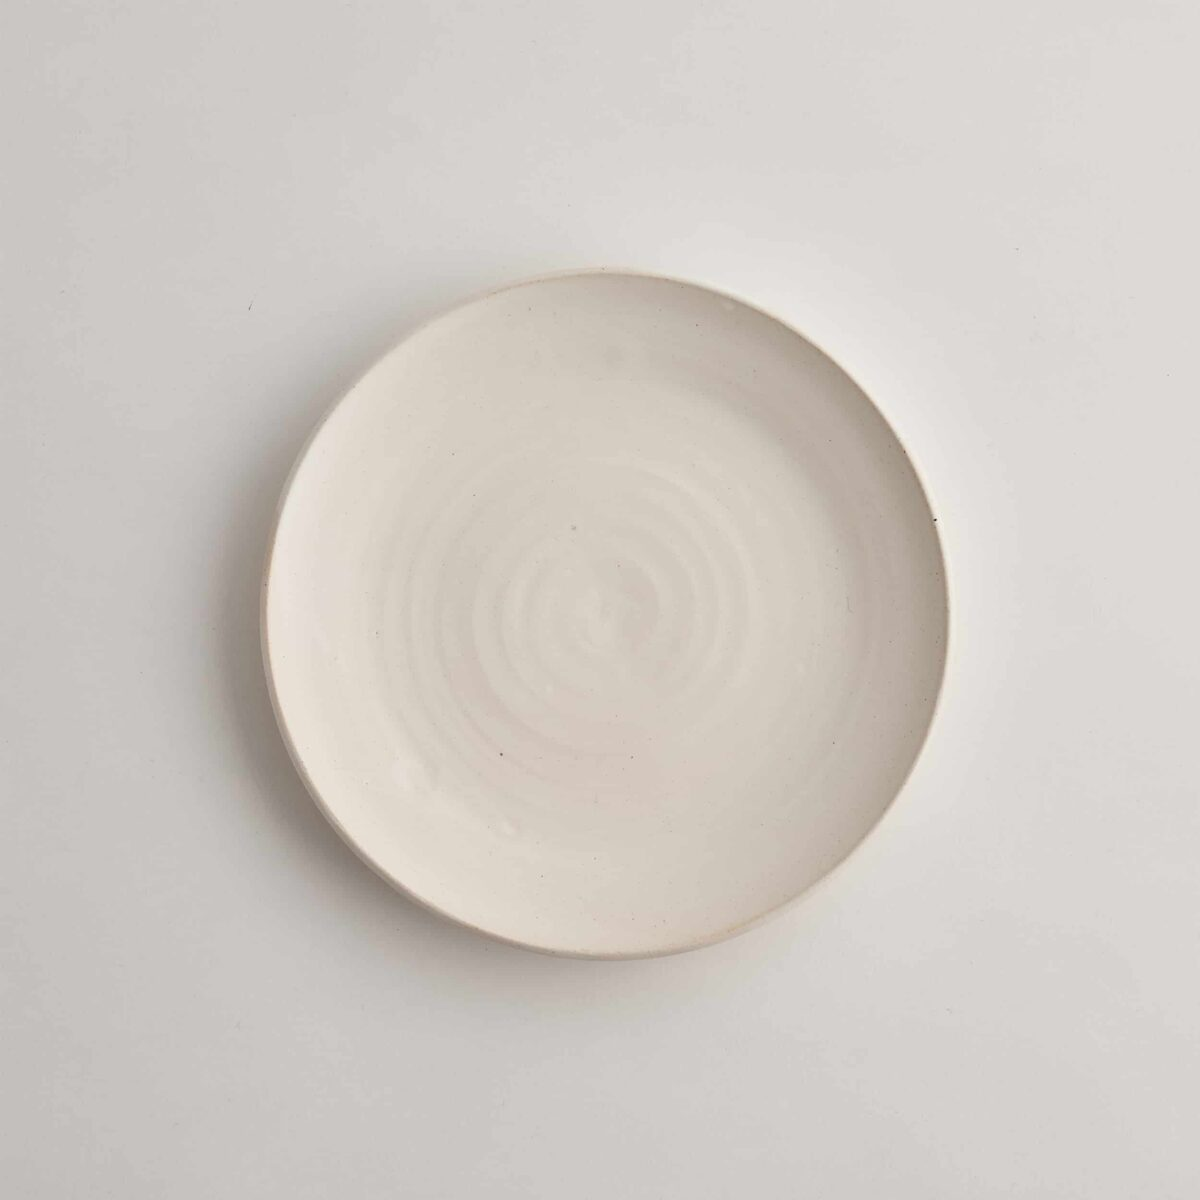 Marland Side Plate Matt White – Another Country – Yeshen Venema -web ready – 21.11.185343